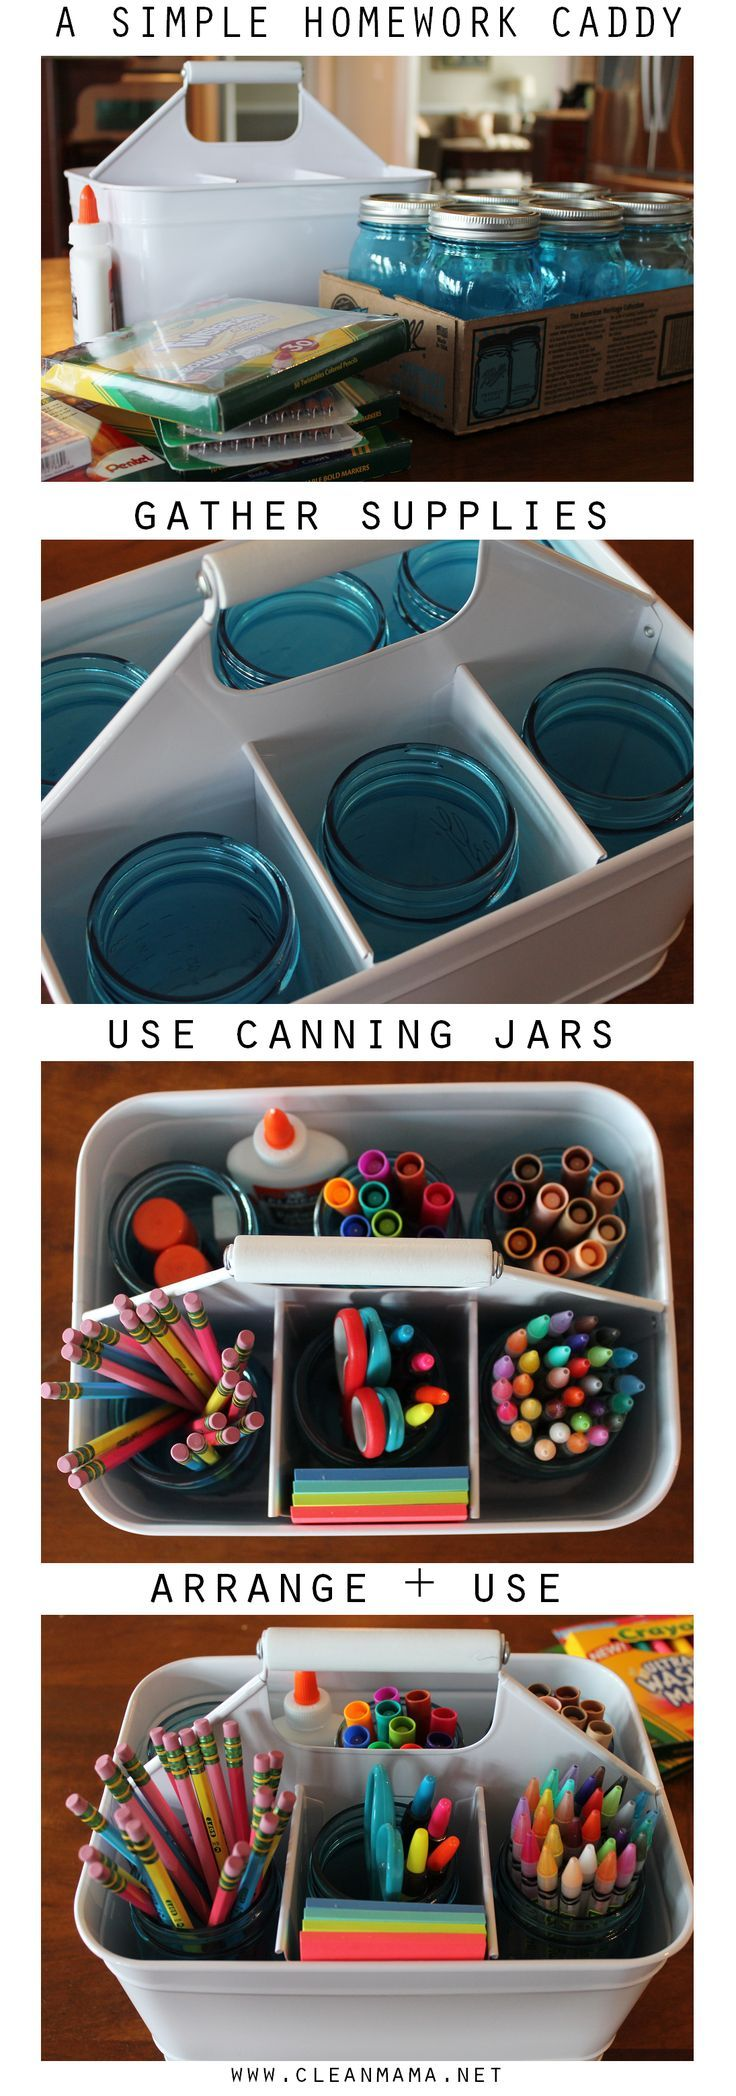 Put together a simple homework caddy to contain all those school supplies and odds and ends. Perfectly functional!